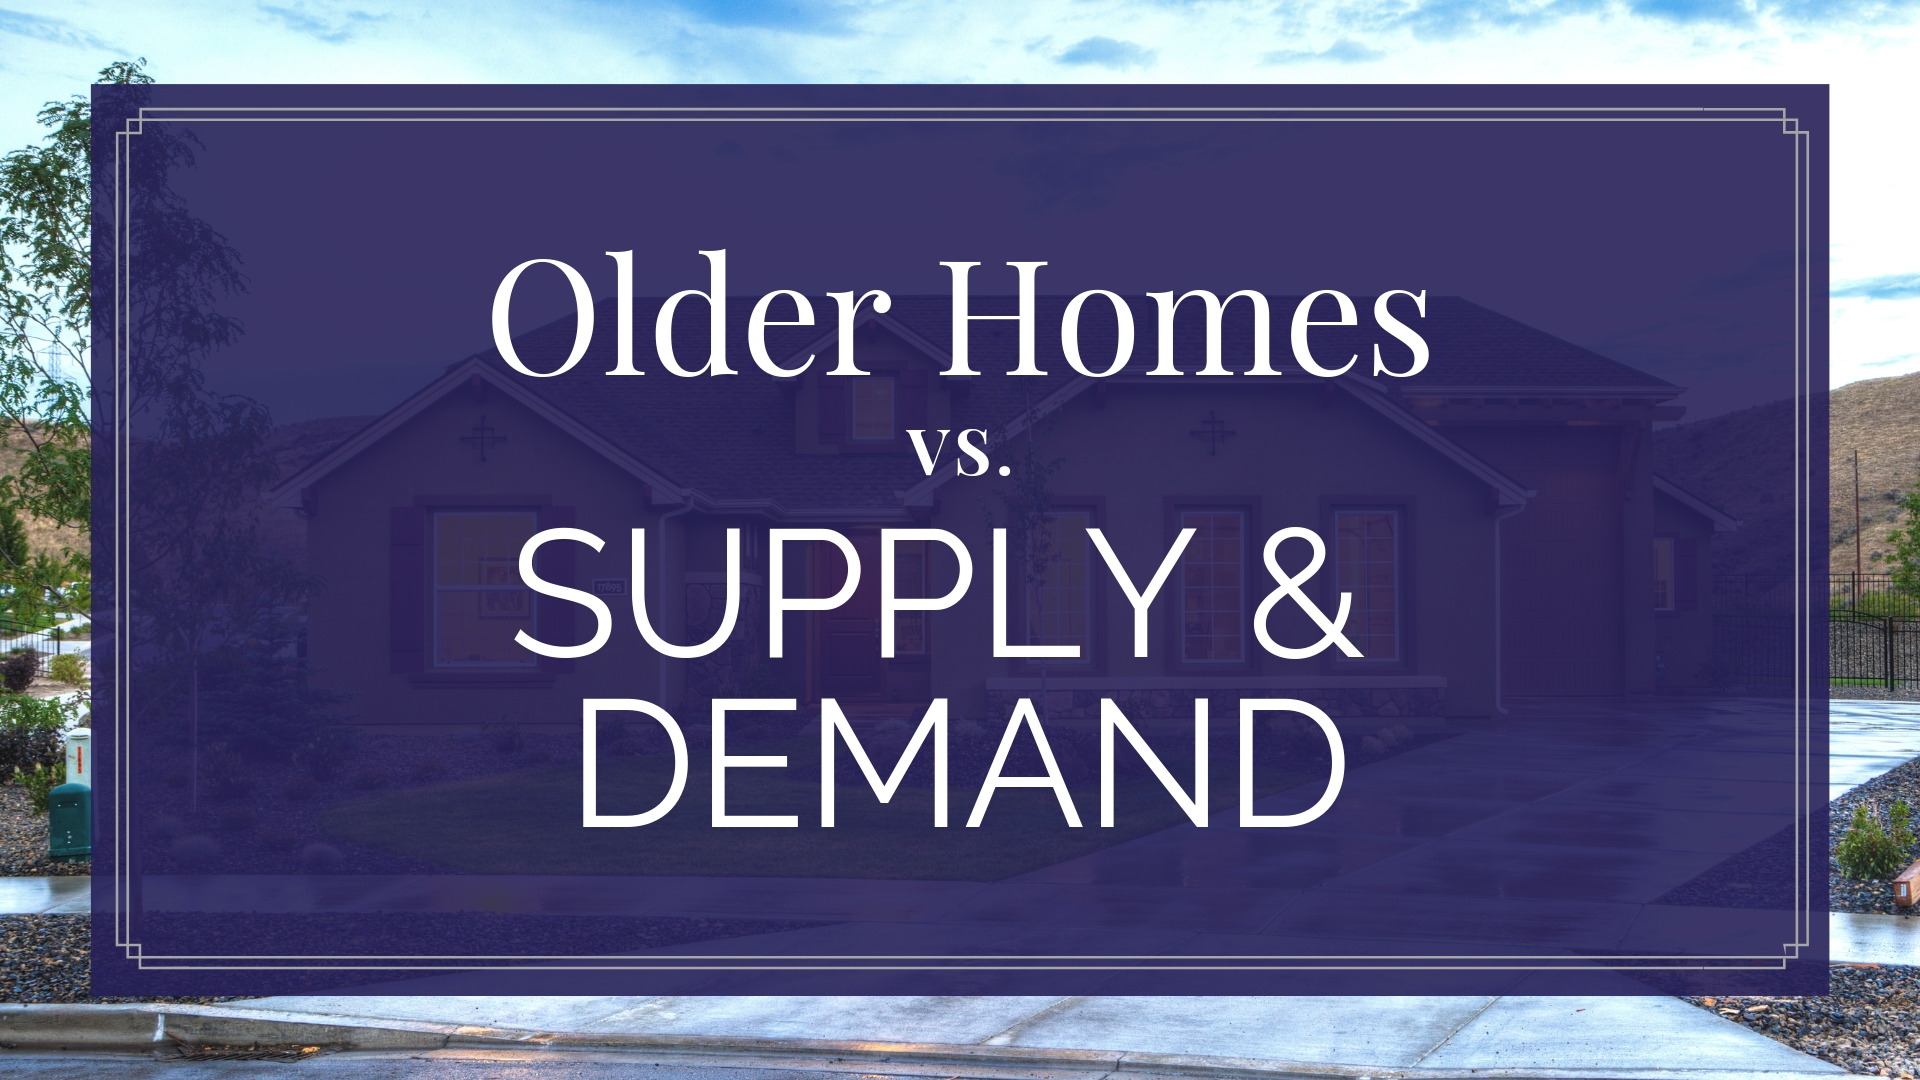 Older Homes vs. Supply & Demand